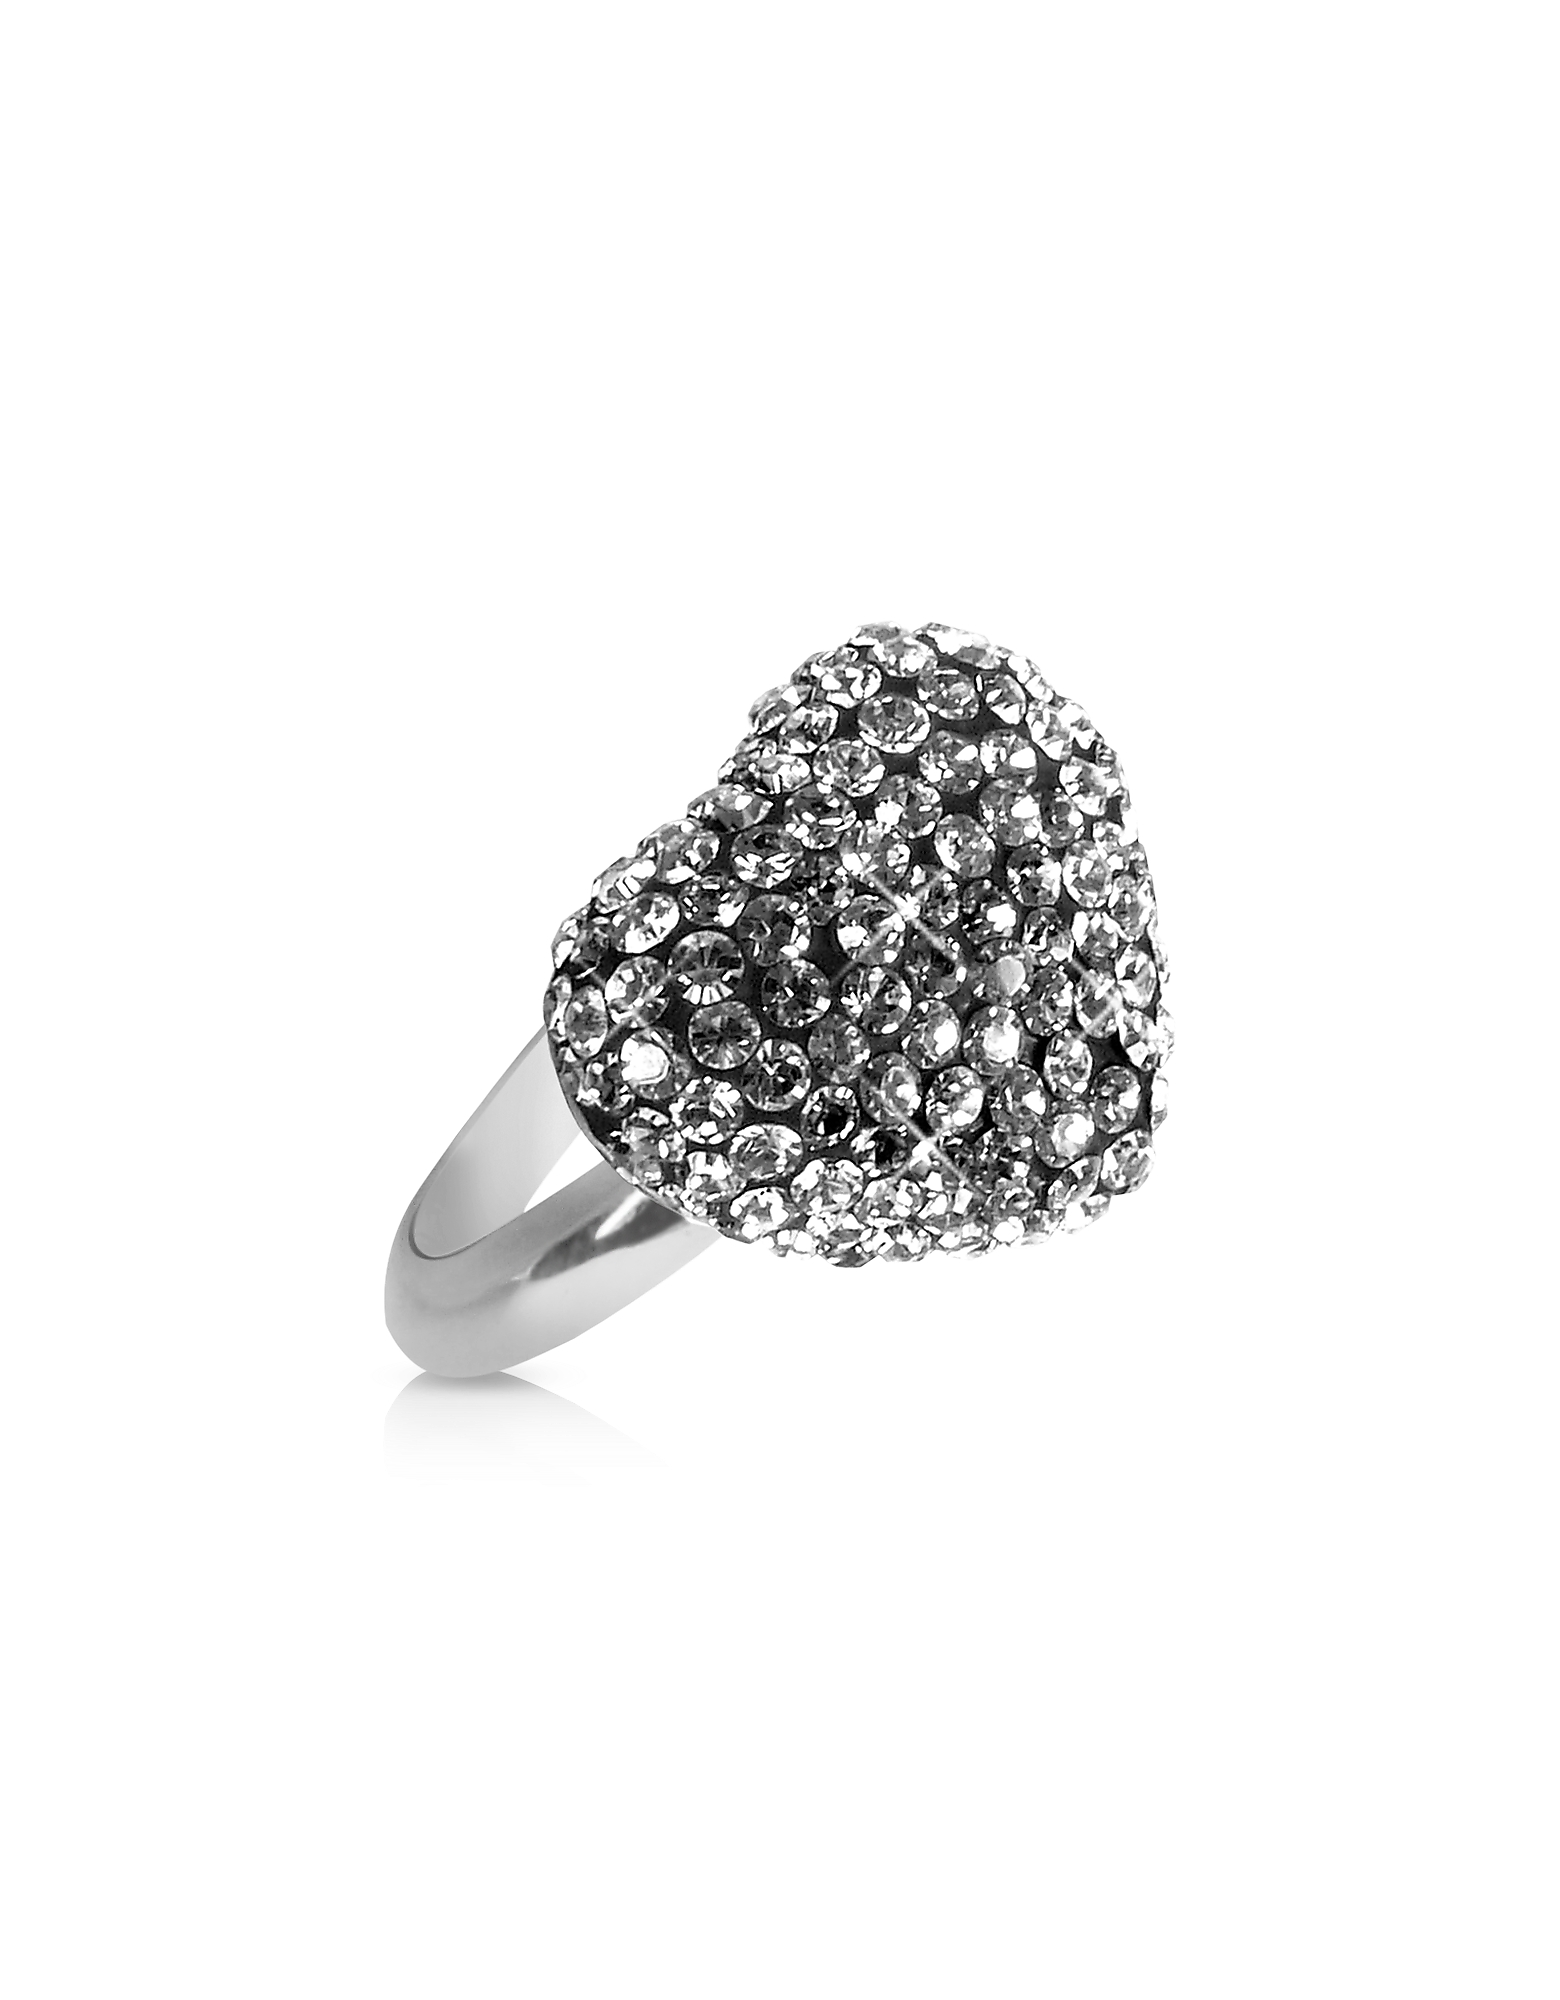 Gisèle St. Moritz Rings, Fantasmania - Crystal Black Heart Ring